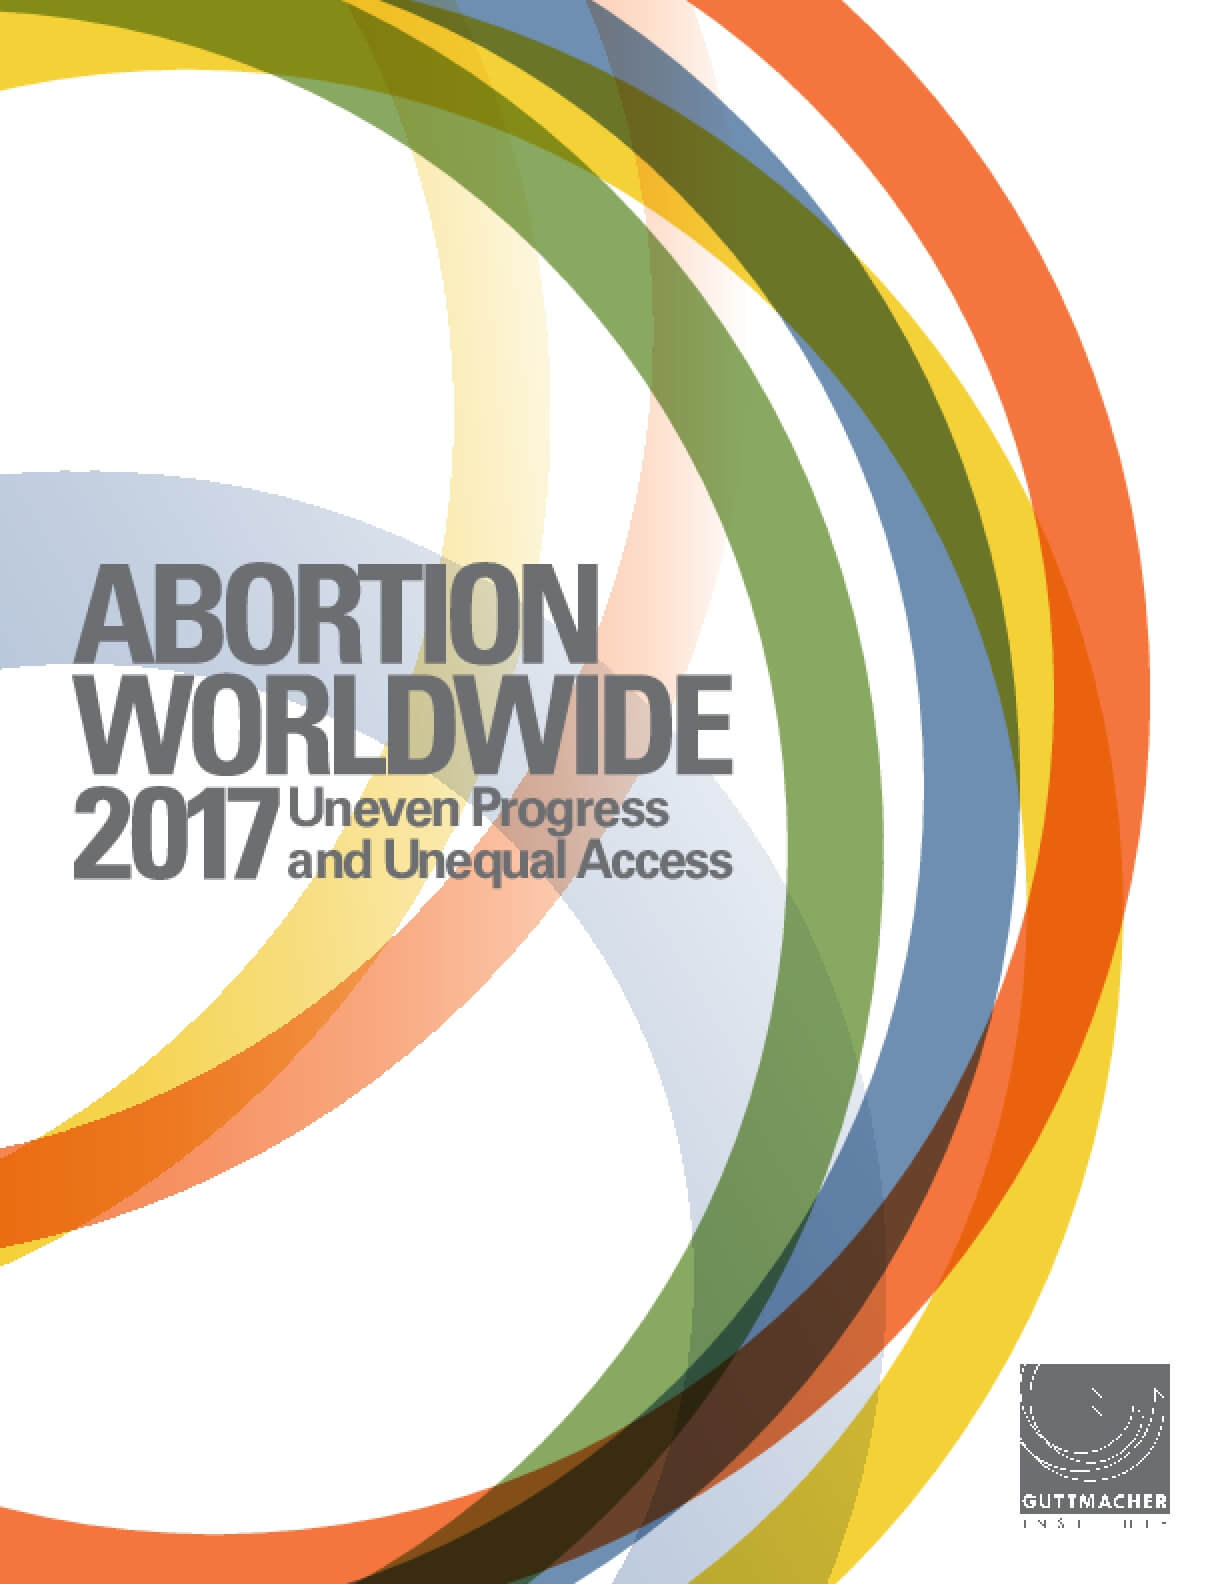 Abortion Worldwide 2017: Uneven Progress and Unequal Access